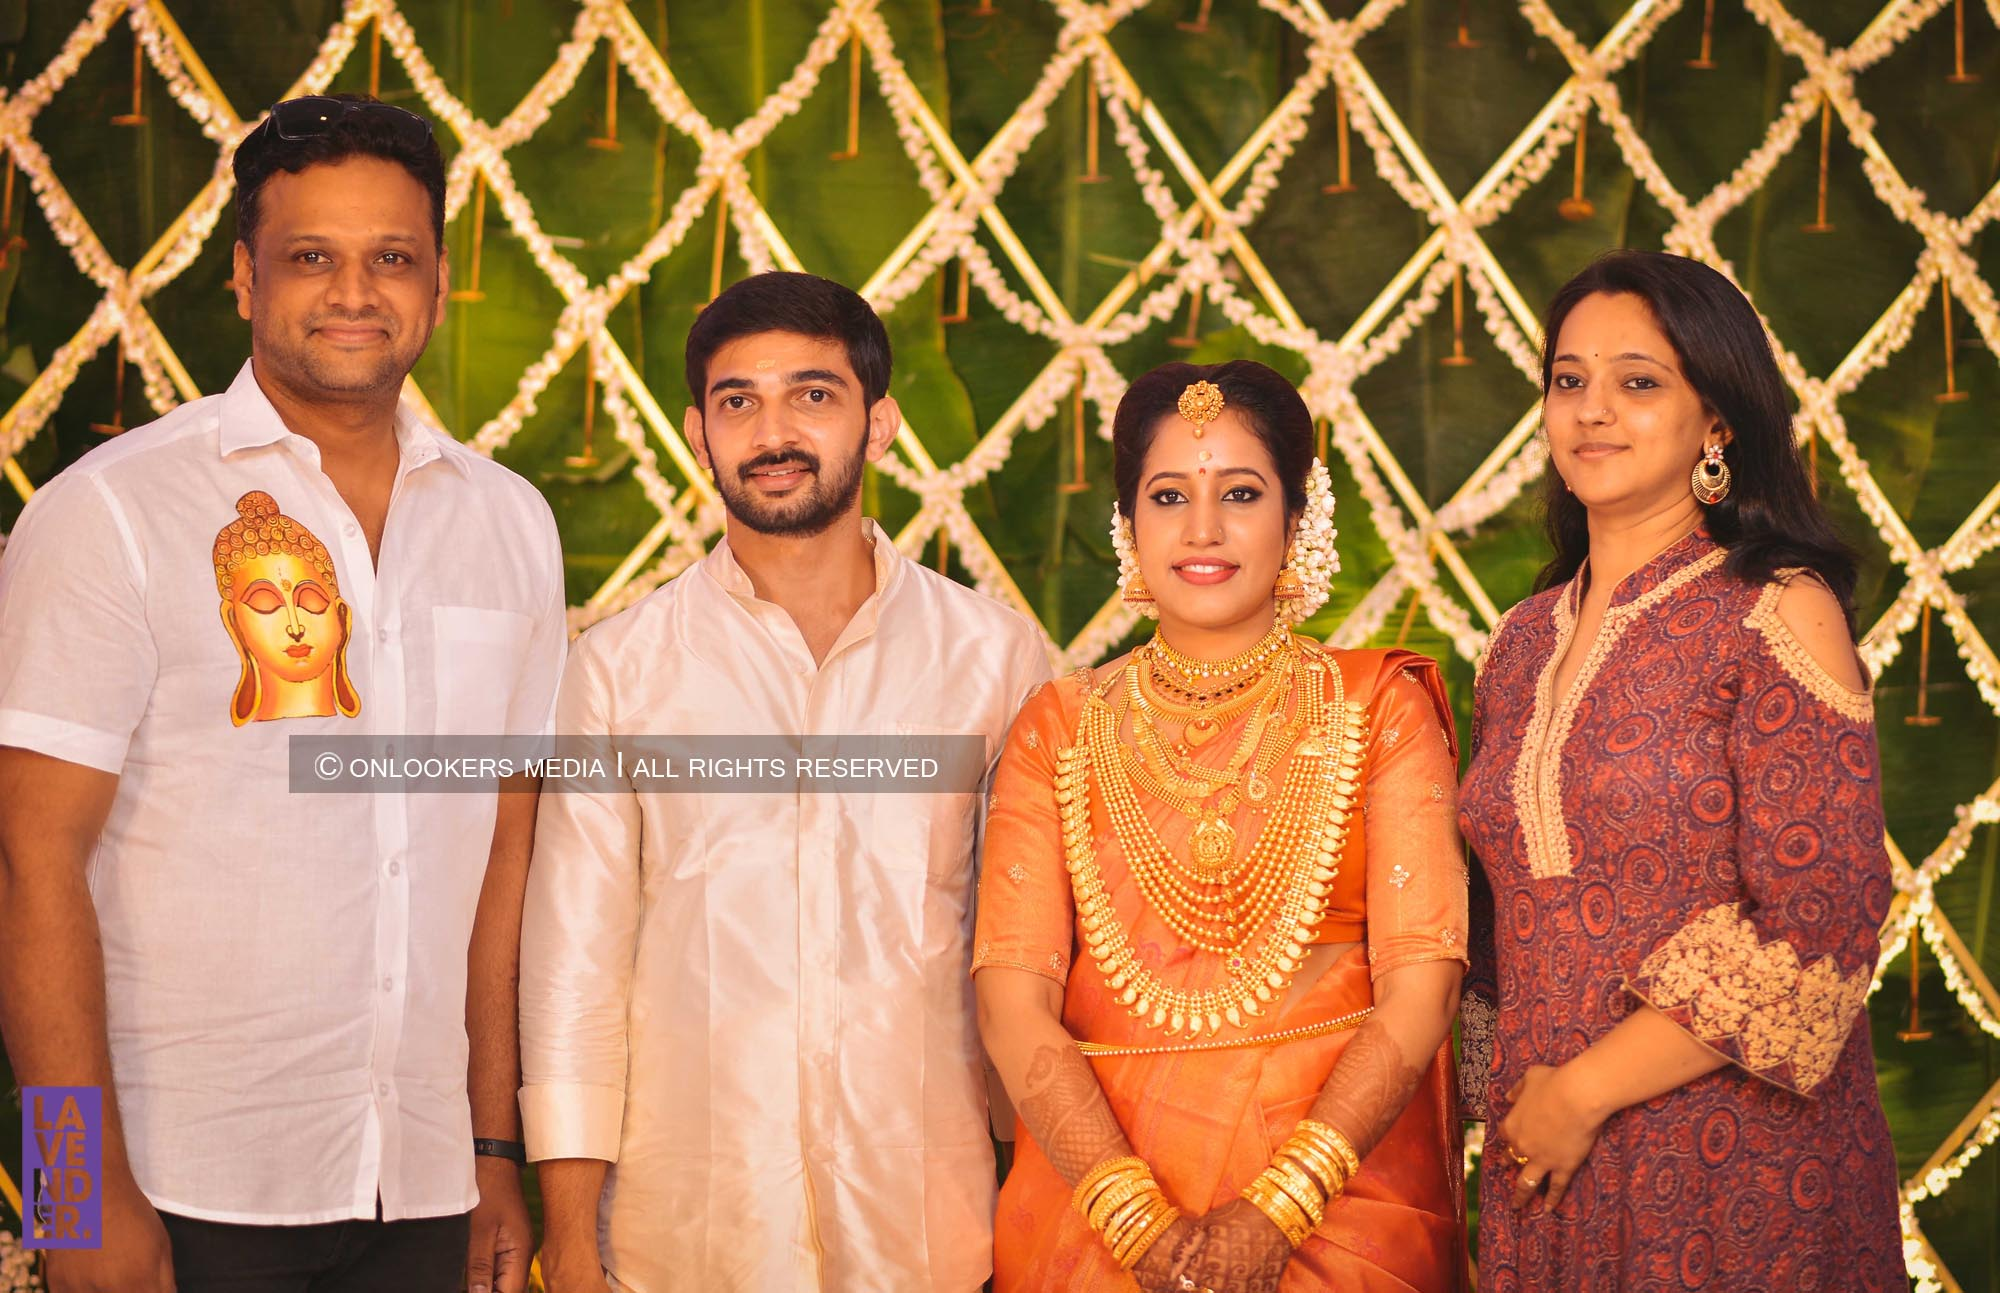 http://onlookersmedia.in/wp-content/uploads/2018/05/sreejith-vijay-wedding-stills-images-114.jpg